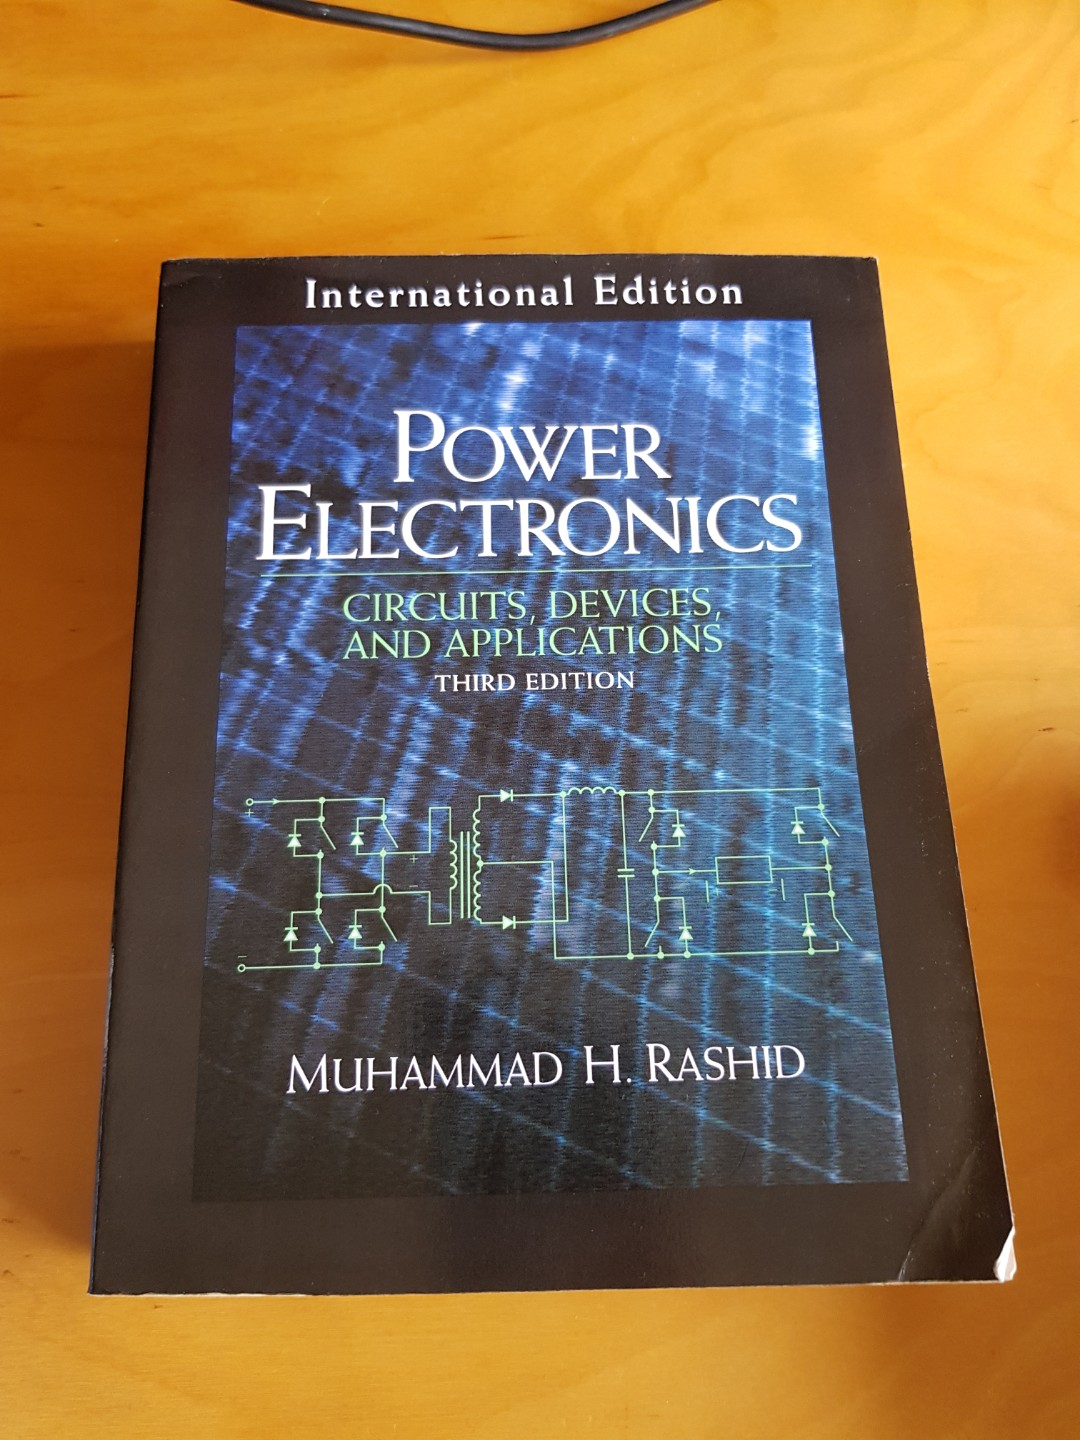 Power electronics circuits devices and applications